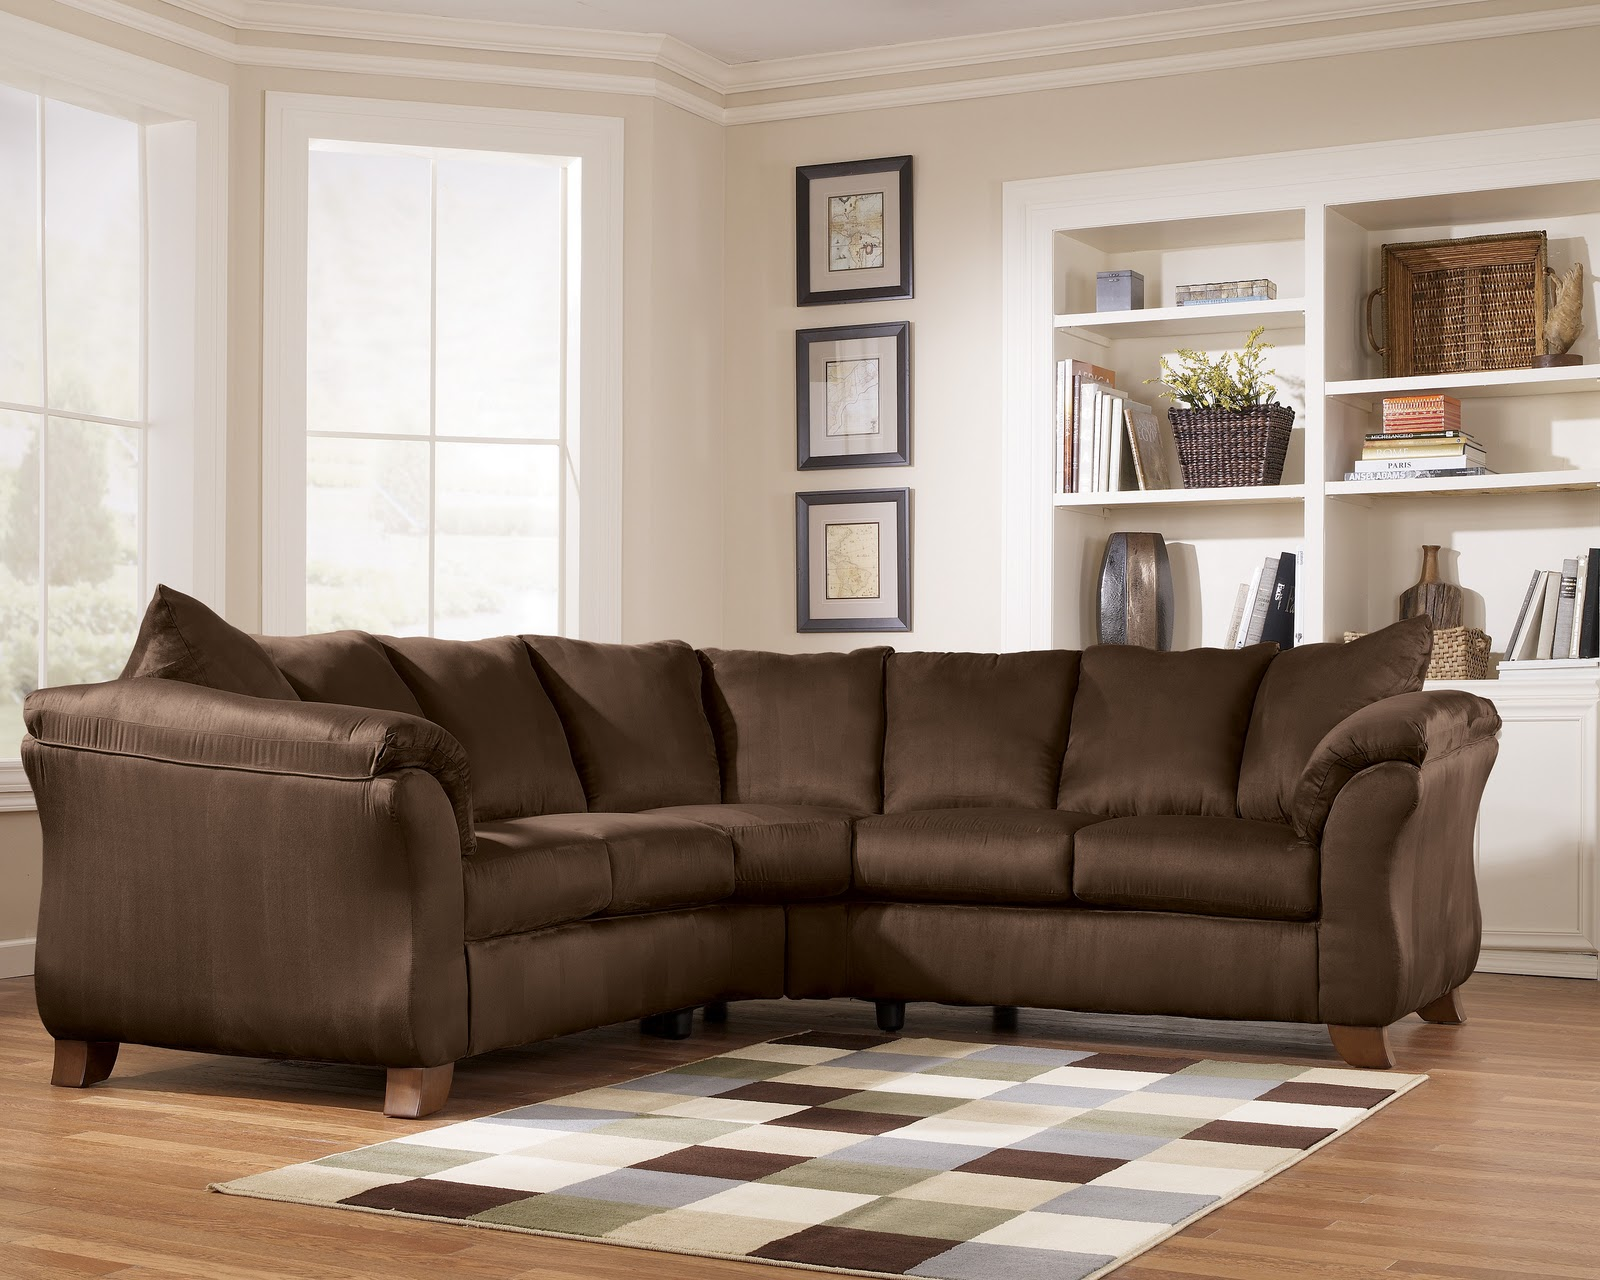 ashleys furniture outlet furniture homestore home furniture and decor 442